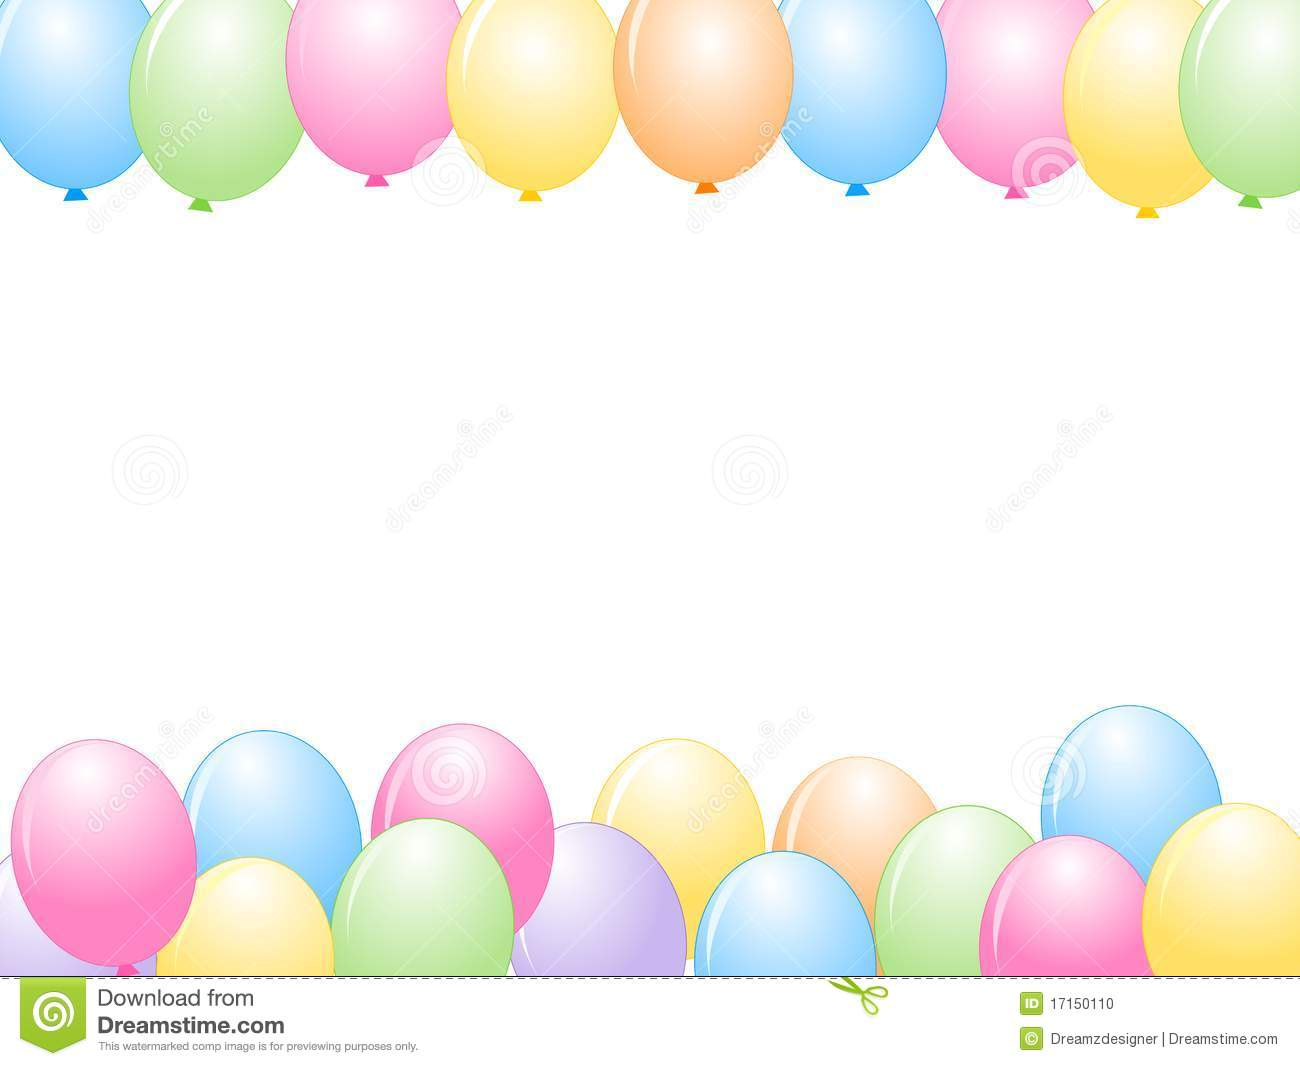 Colorful balloons isolated on white background illustration, Greeting ...